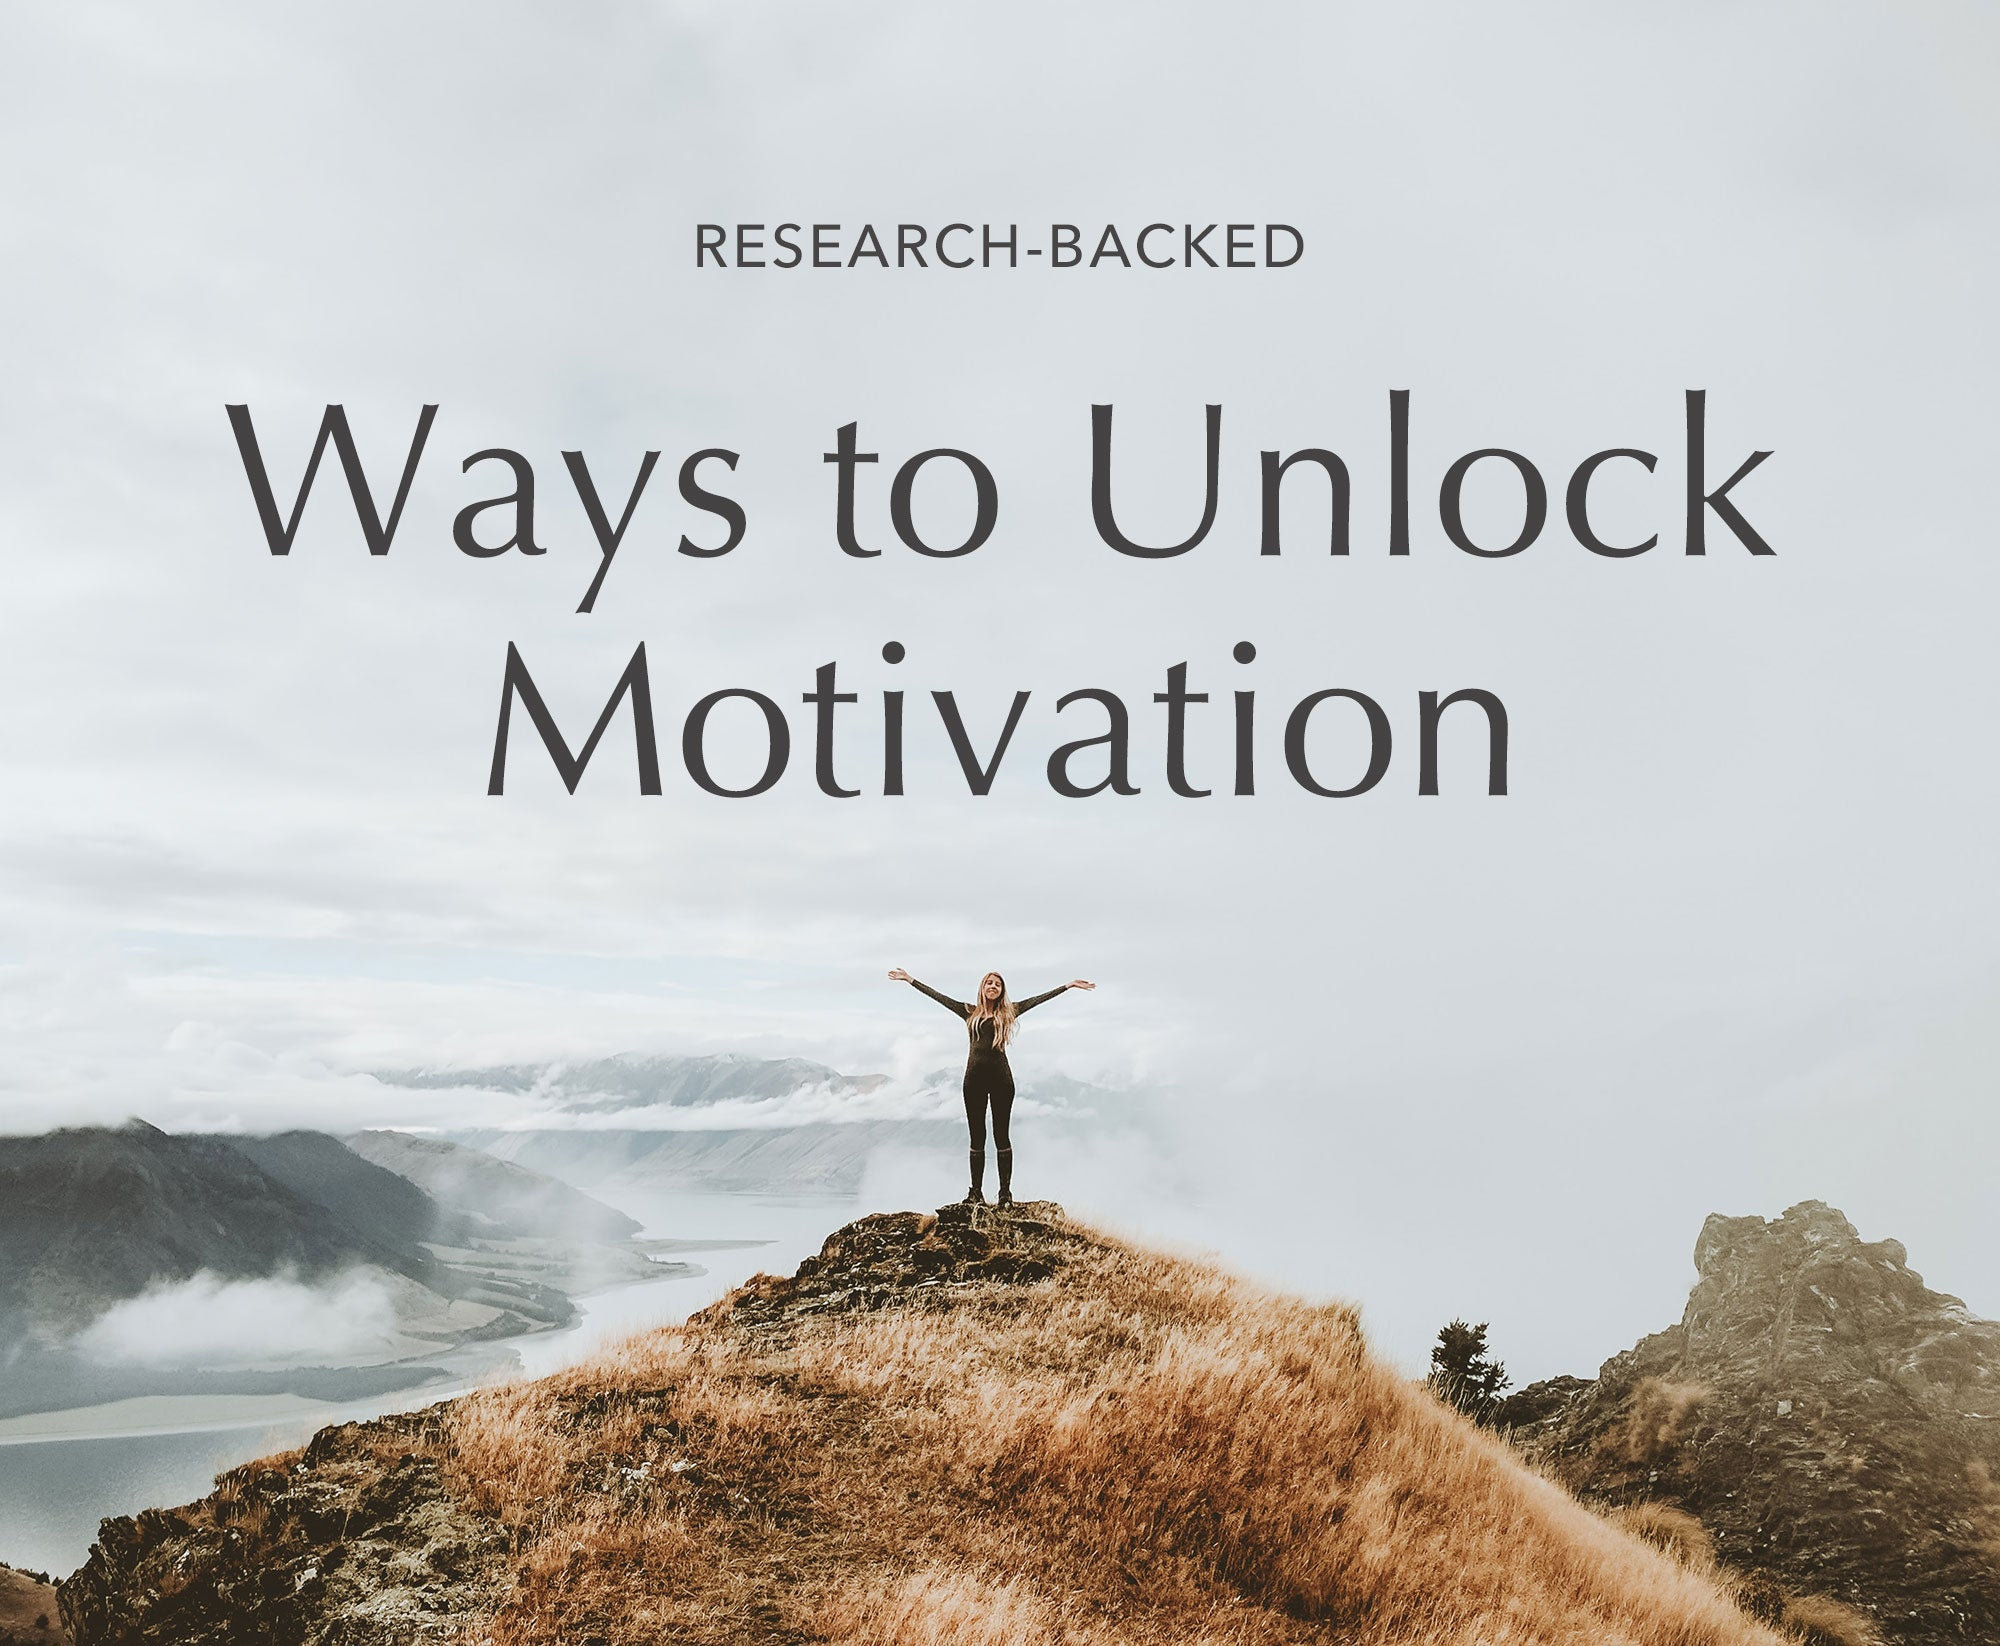 6 Science-Backed Ways to Find Motivation